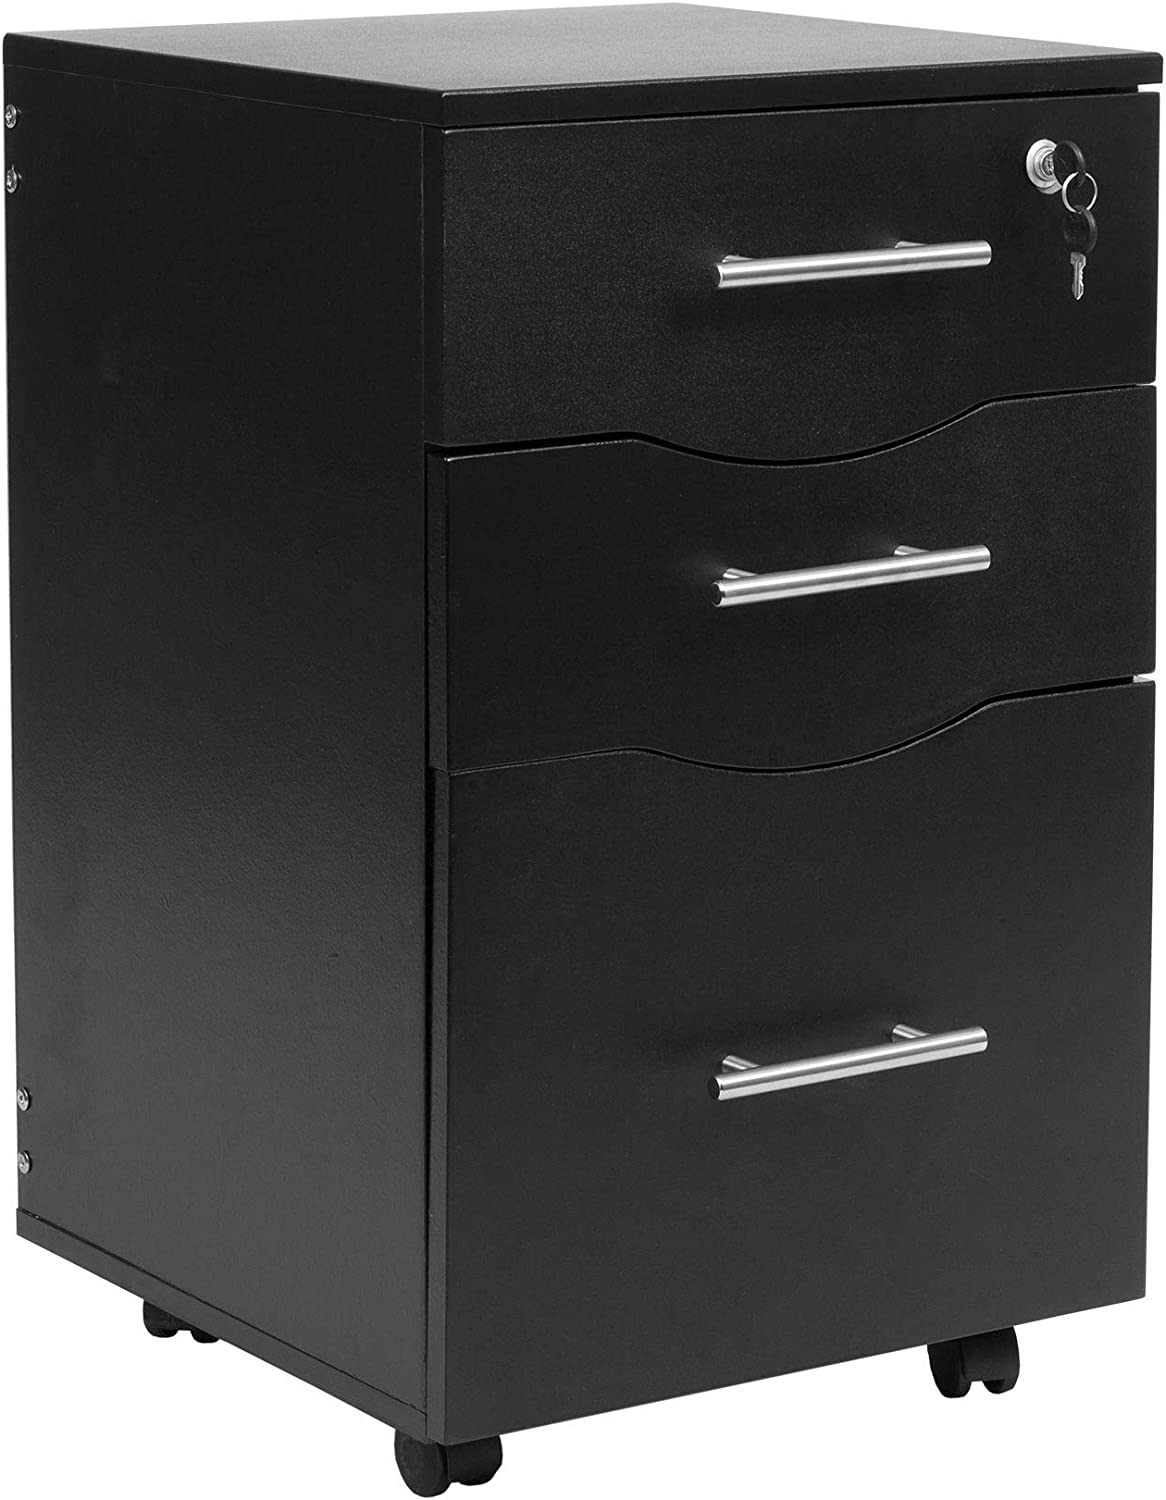 MMT Furniture Designs Ltd MMT-IV3333black Under Desk 33 Drawer Pedestal, Black